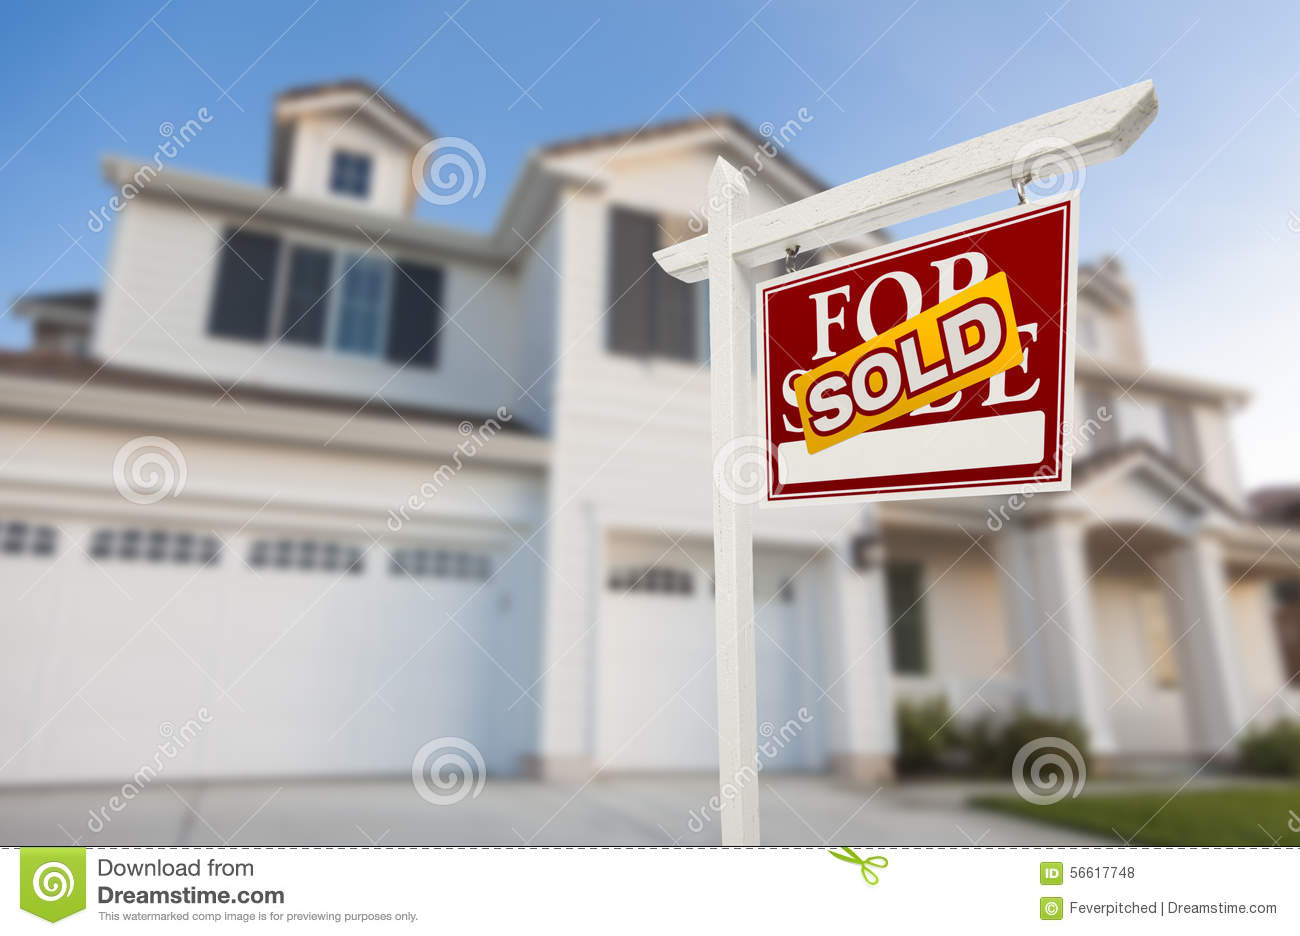 Sold home for sale sign in front of new house stock photo for New home sign